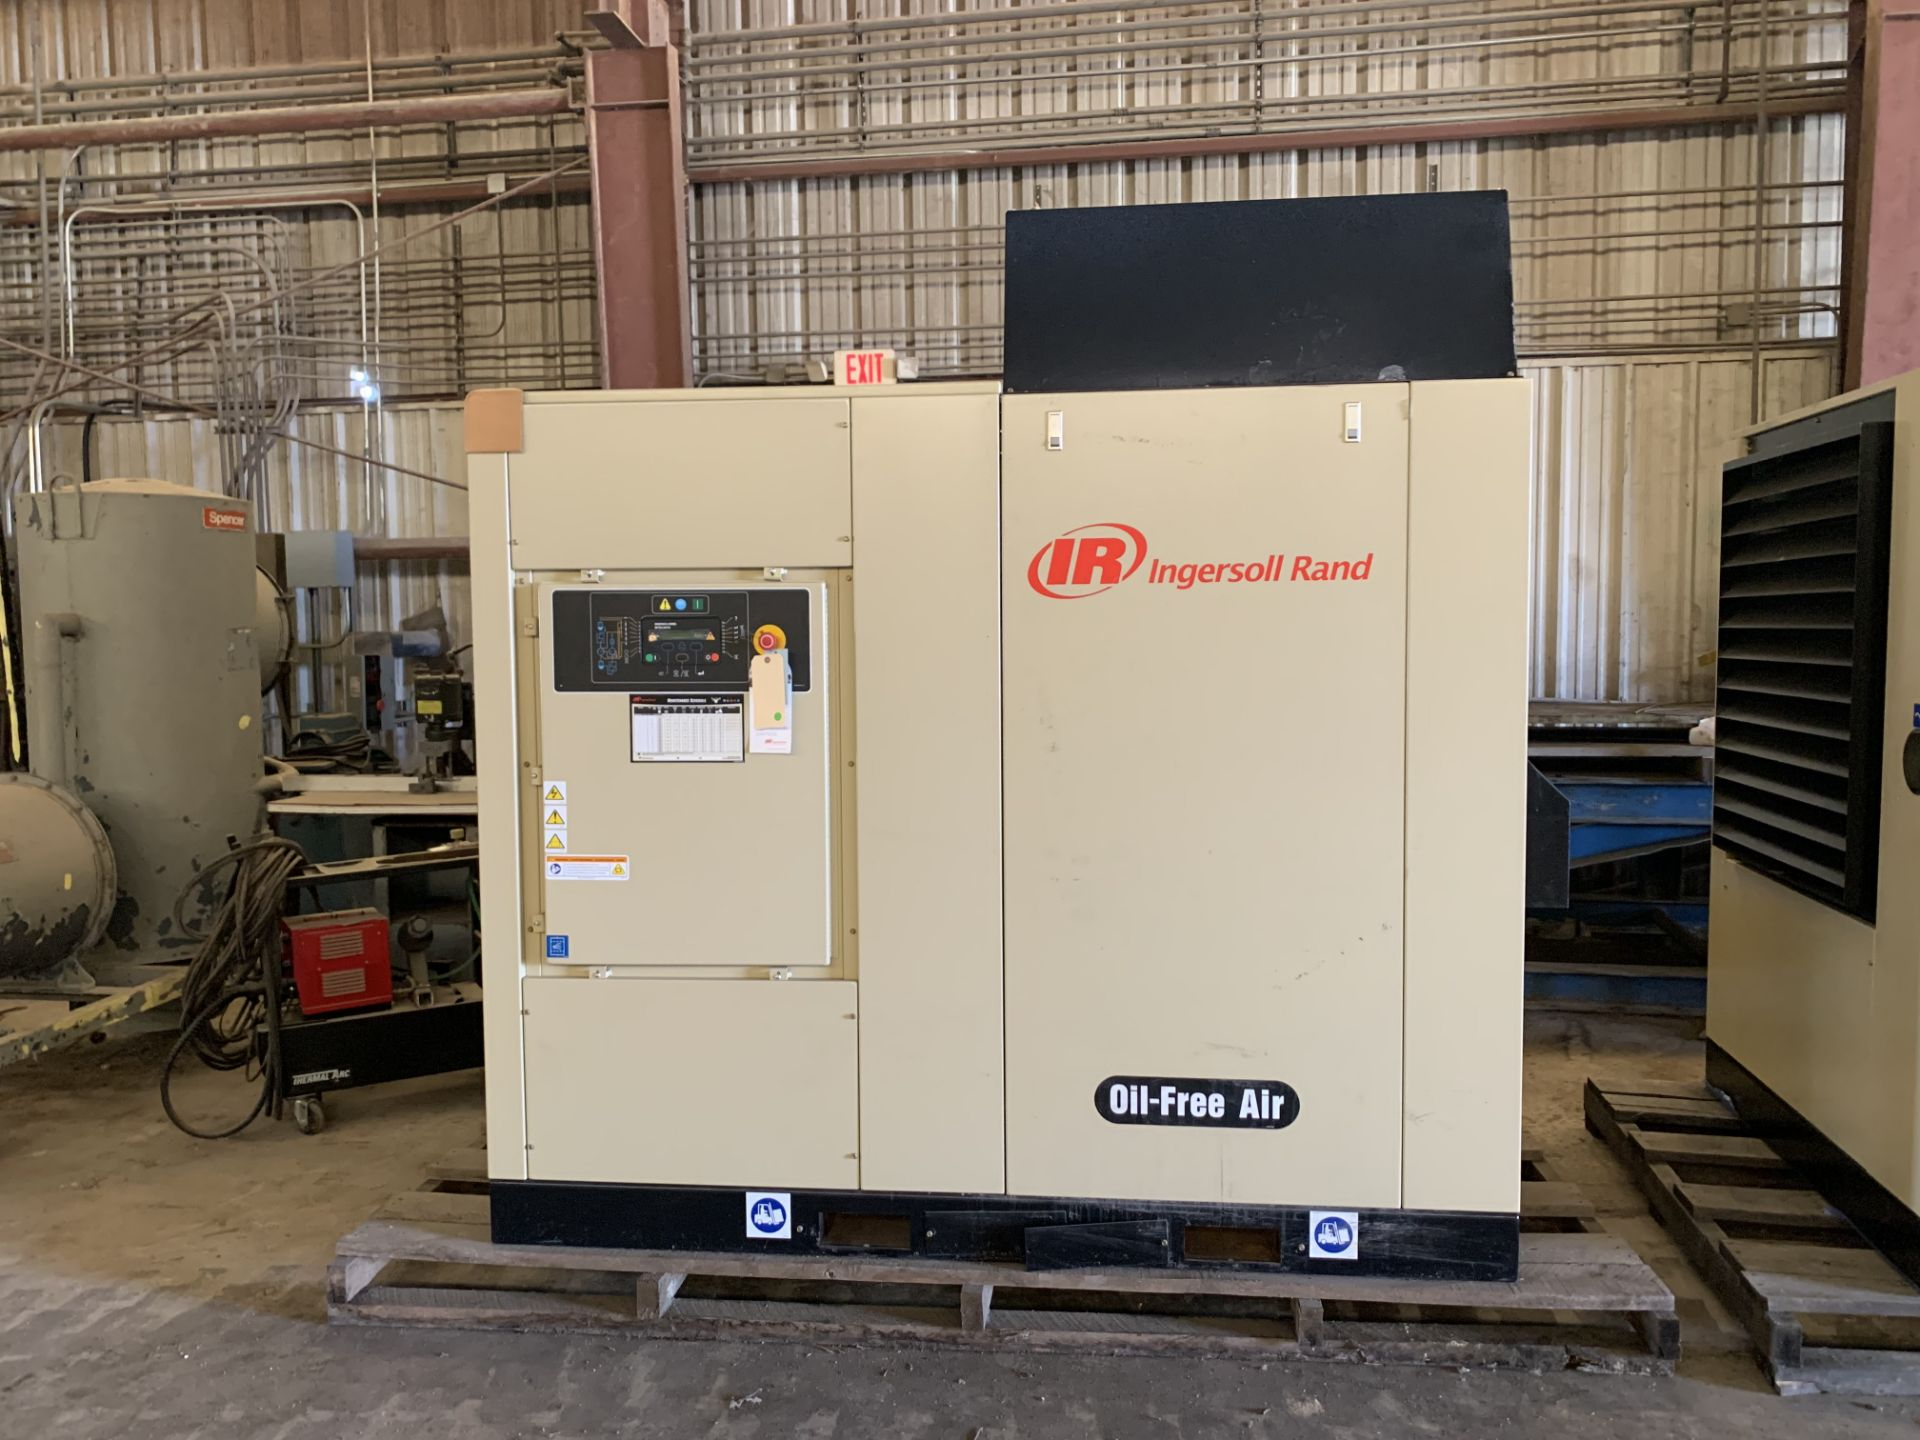 Ingersol-Rand Air Compressors - Image 3 of 6